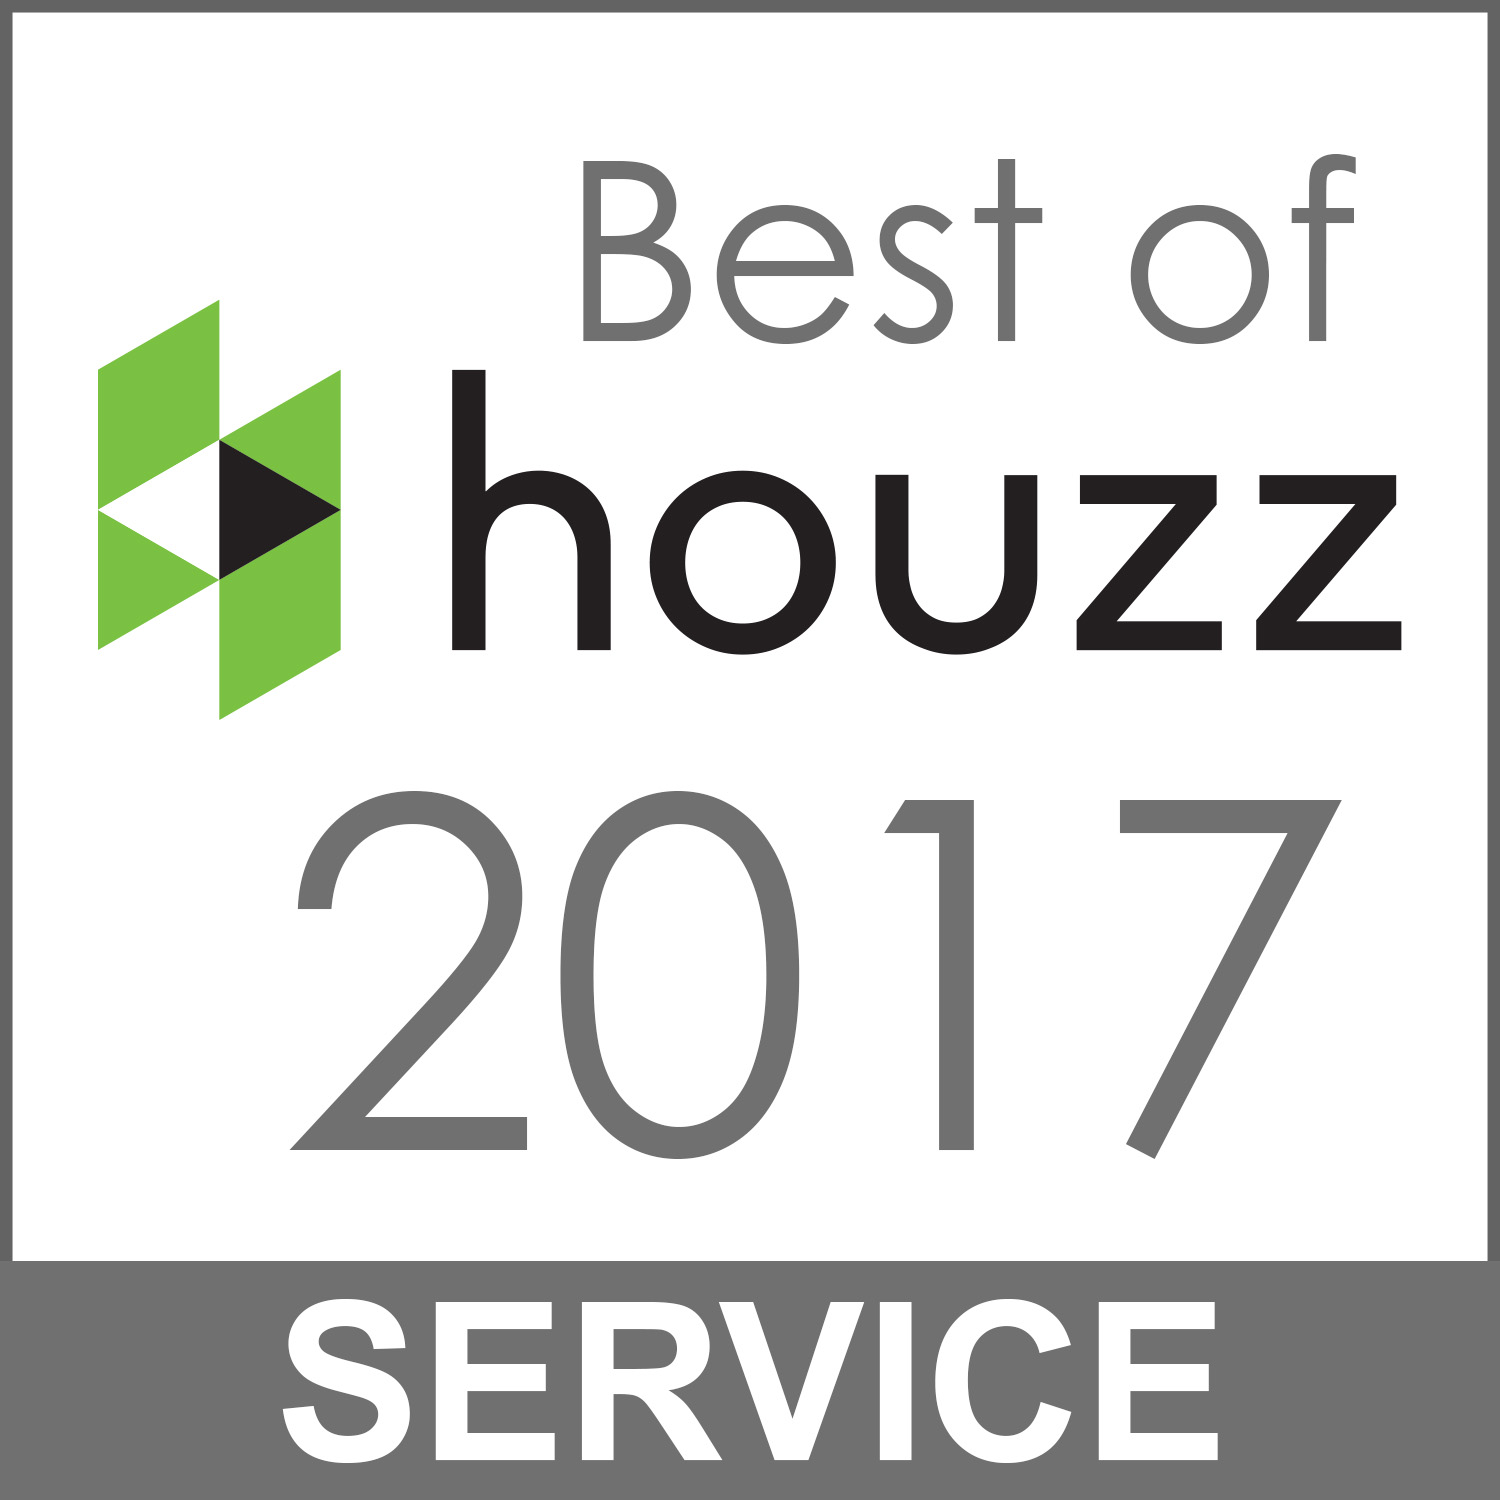 best-of-houzz-2017-badge.jpg